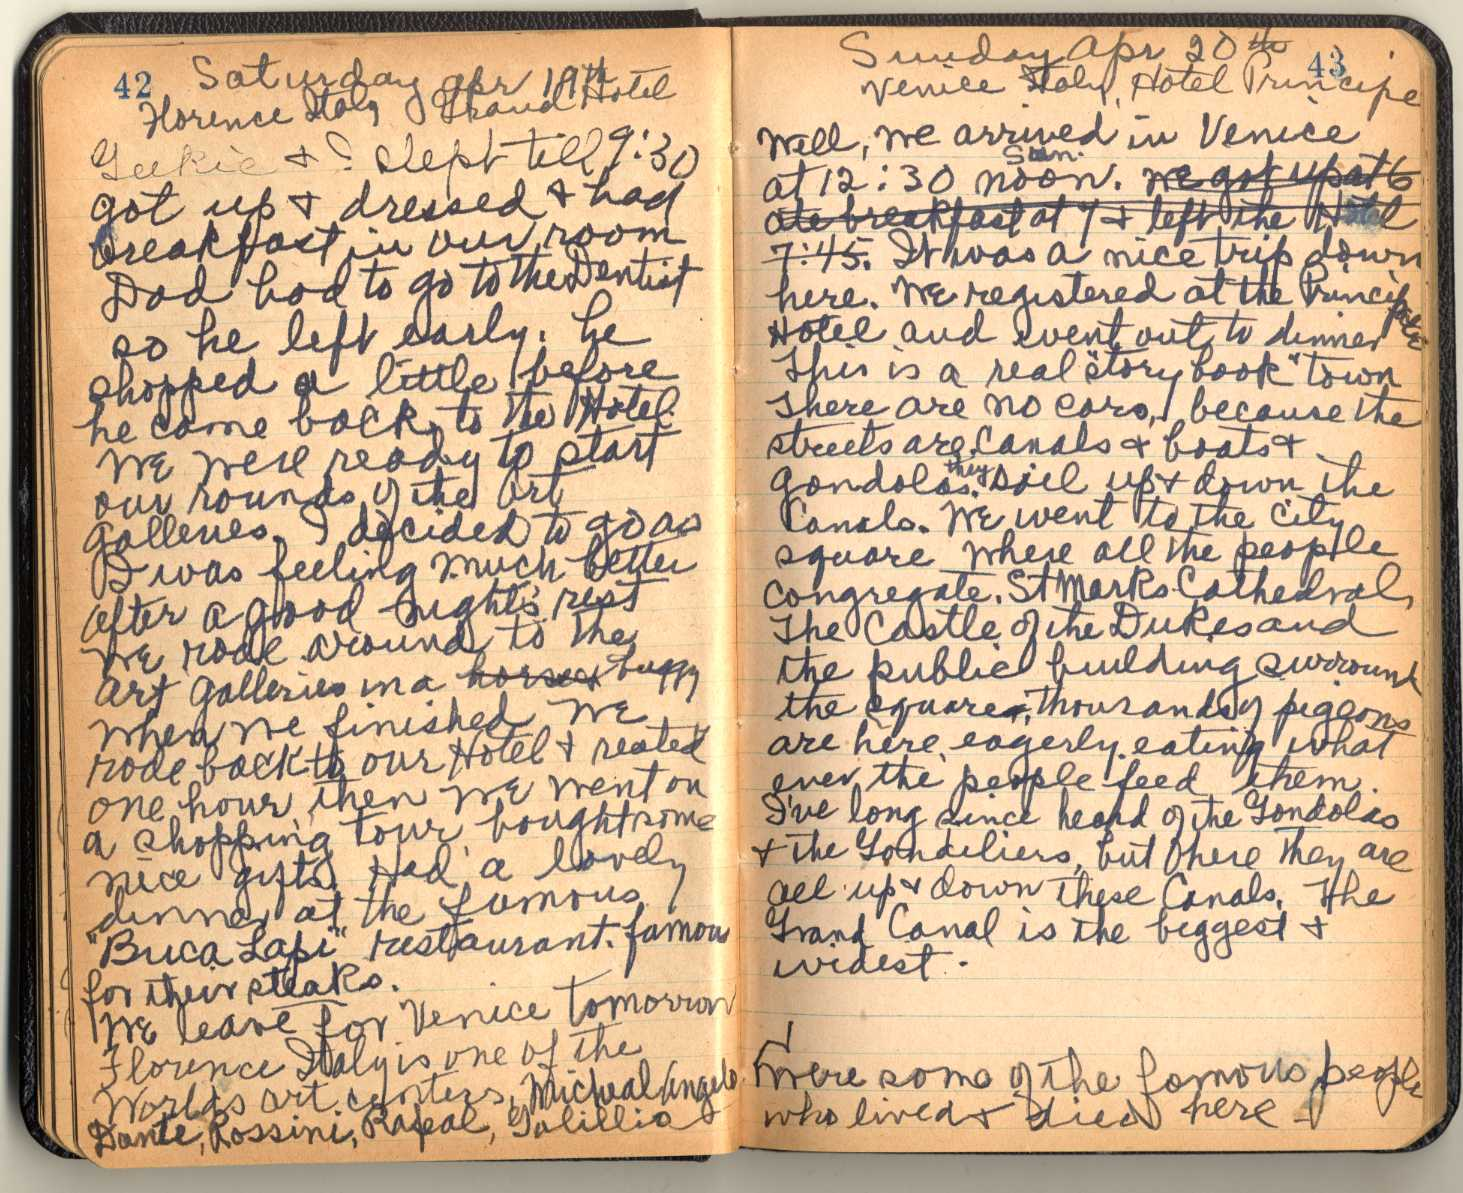 Irene Dobb's travel diary while in Venice, Italy, April 1952.